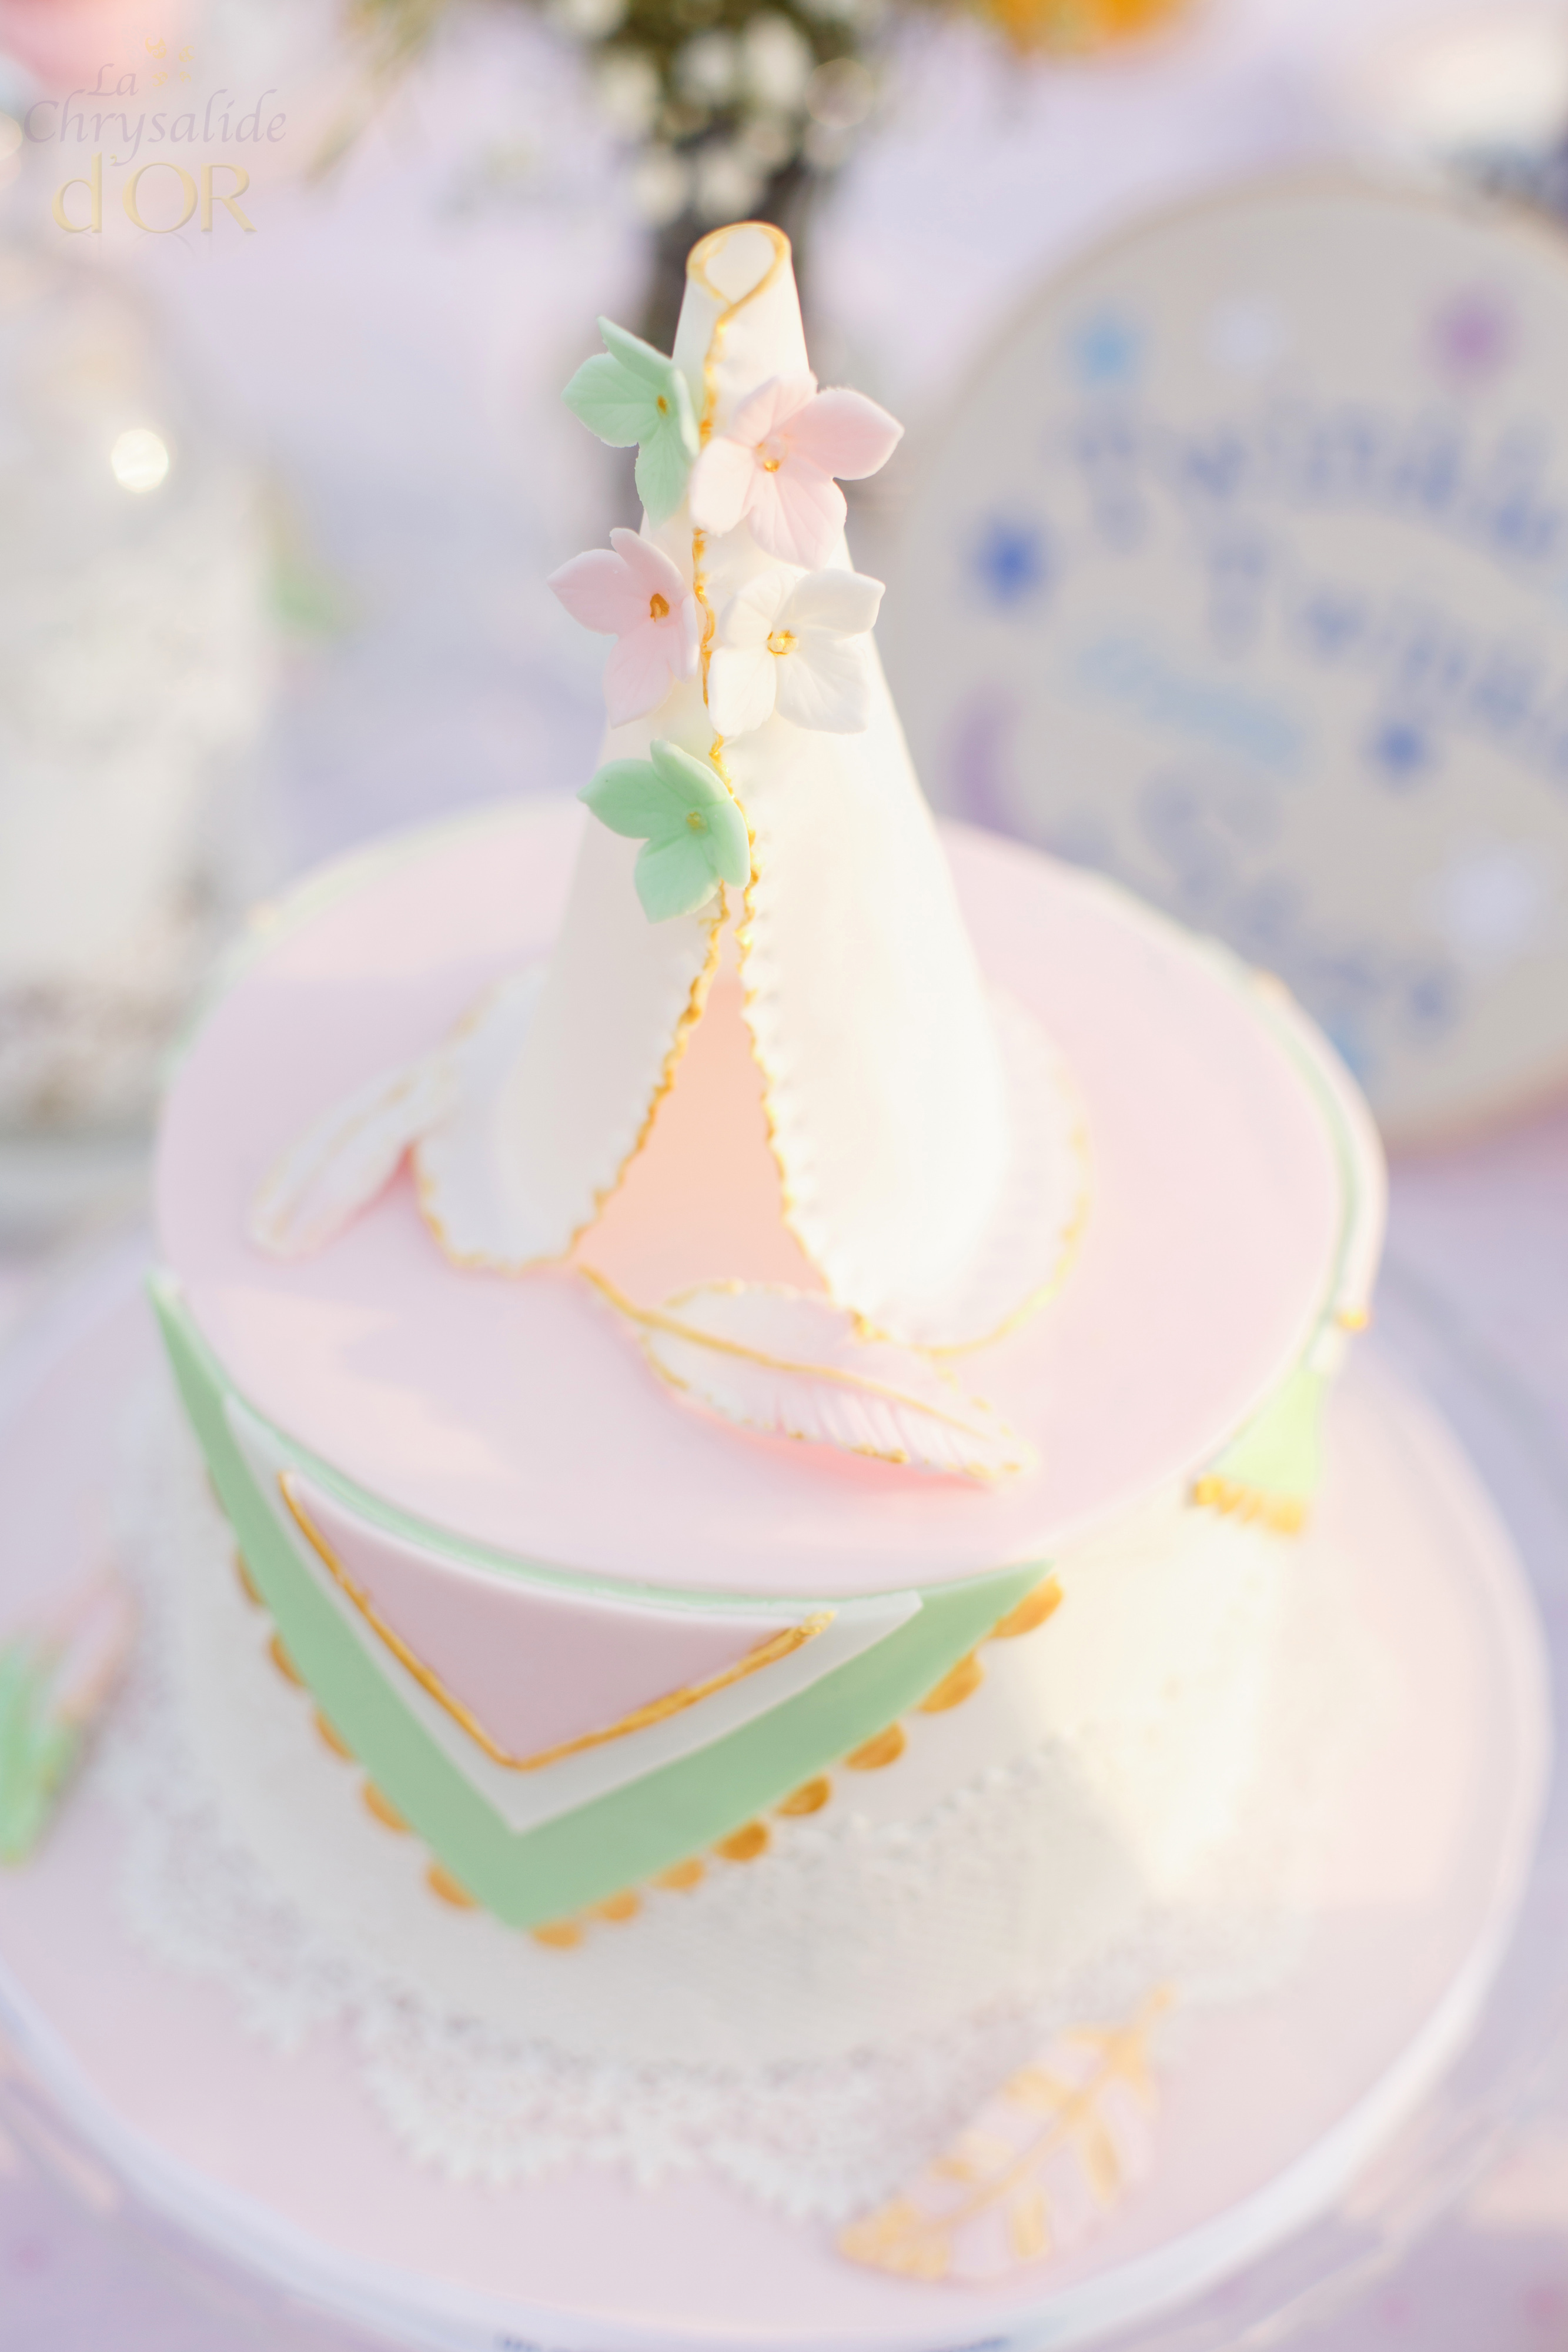 Wedding cake, cup cake baby shower toulouse Montauban Agen